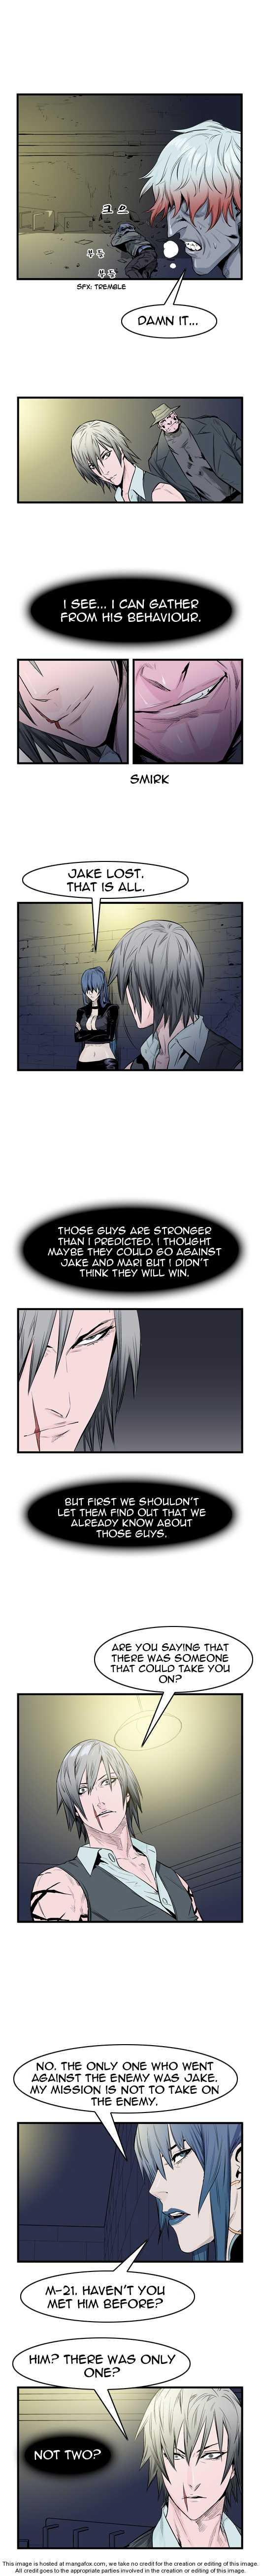 Noblesse 48 Page 2